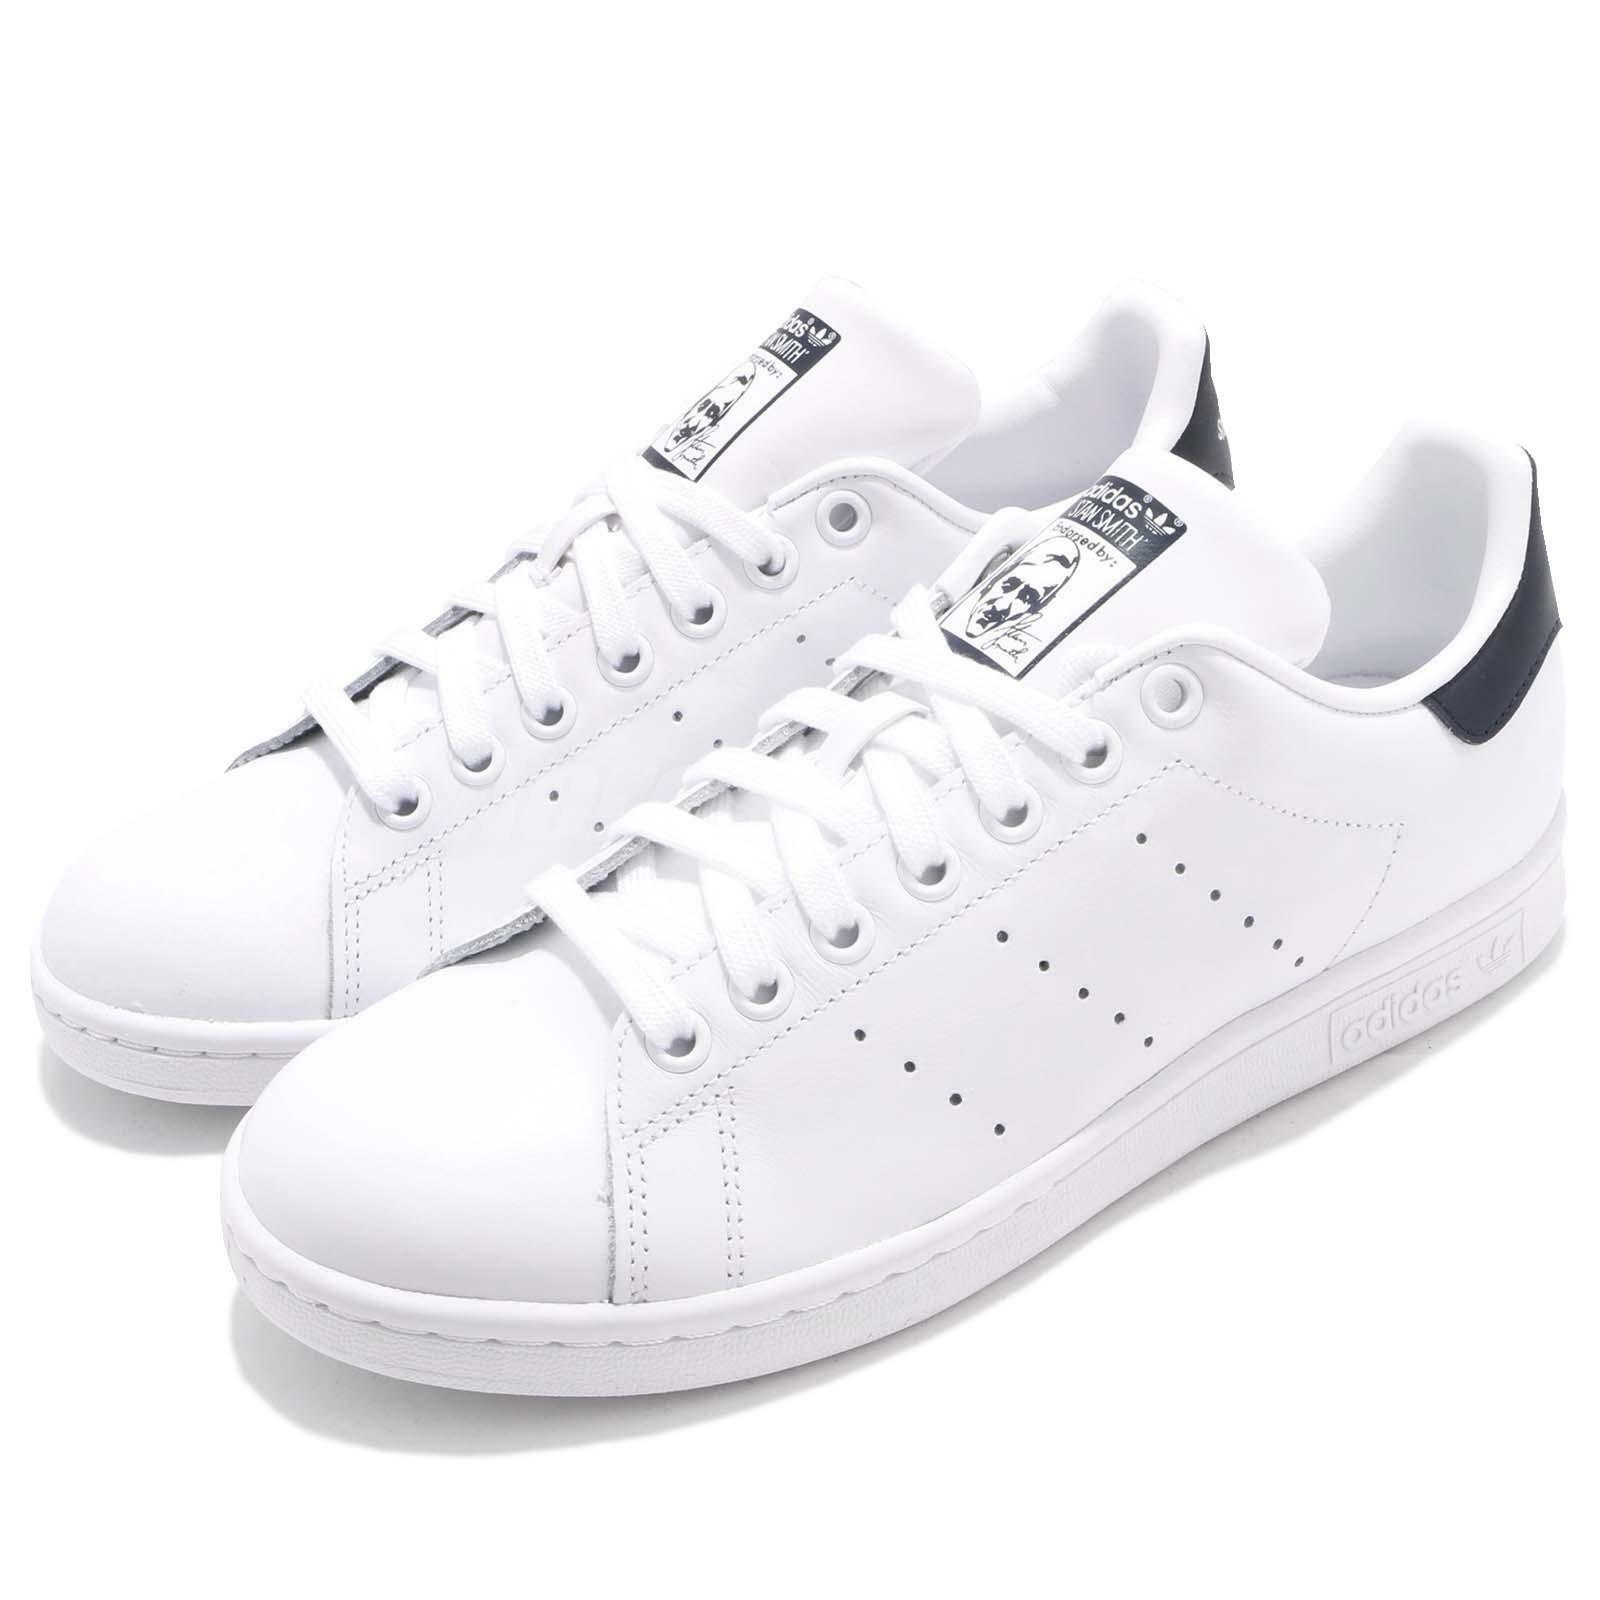 Adidas Originals Casual Stan Smith White Navy Uomo Casual Originals Scarpe Scarpe da Ginnastica M20325 4f41ea